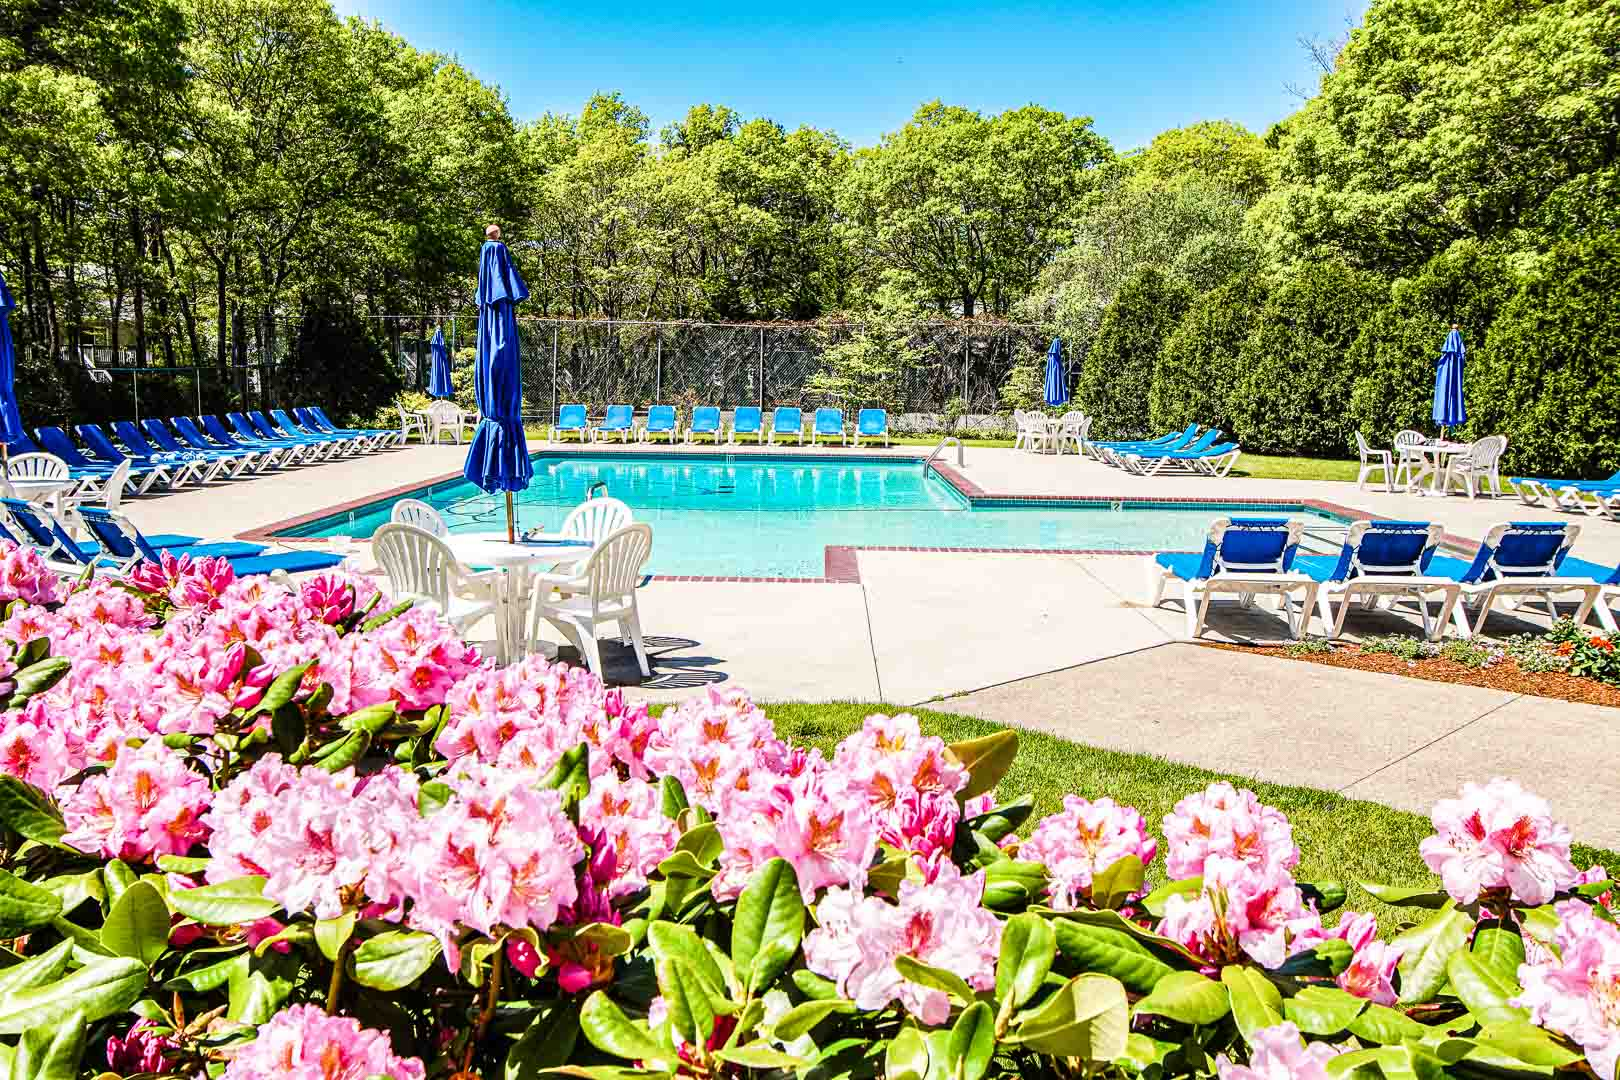 A beautiful view of the outdoor swimming pool at VRI's Sea Mist Resort in Massachusetts.